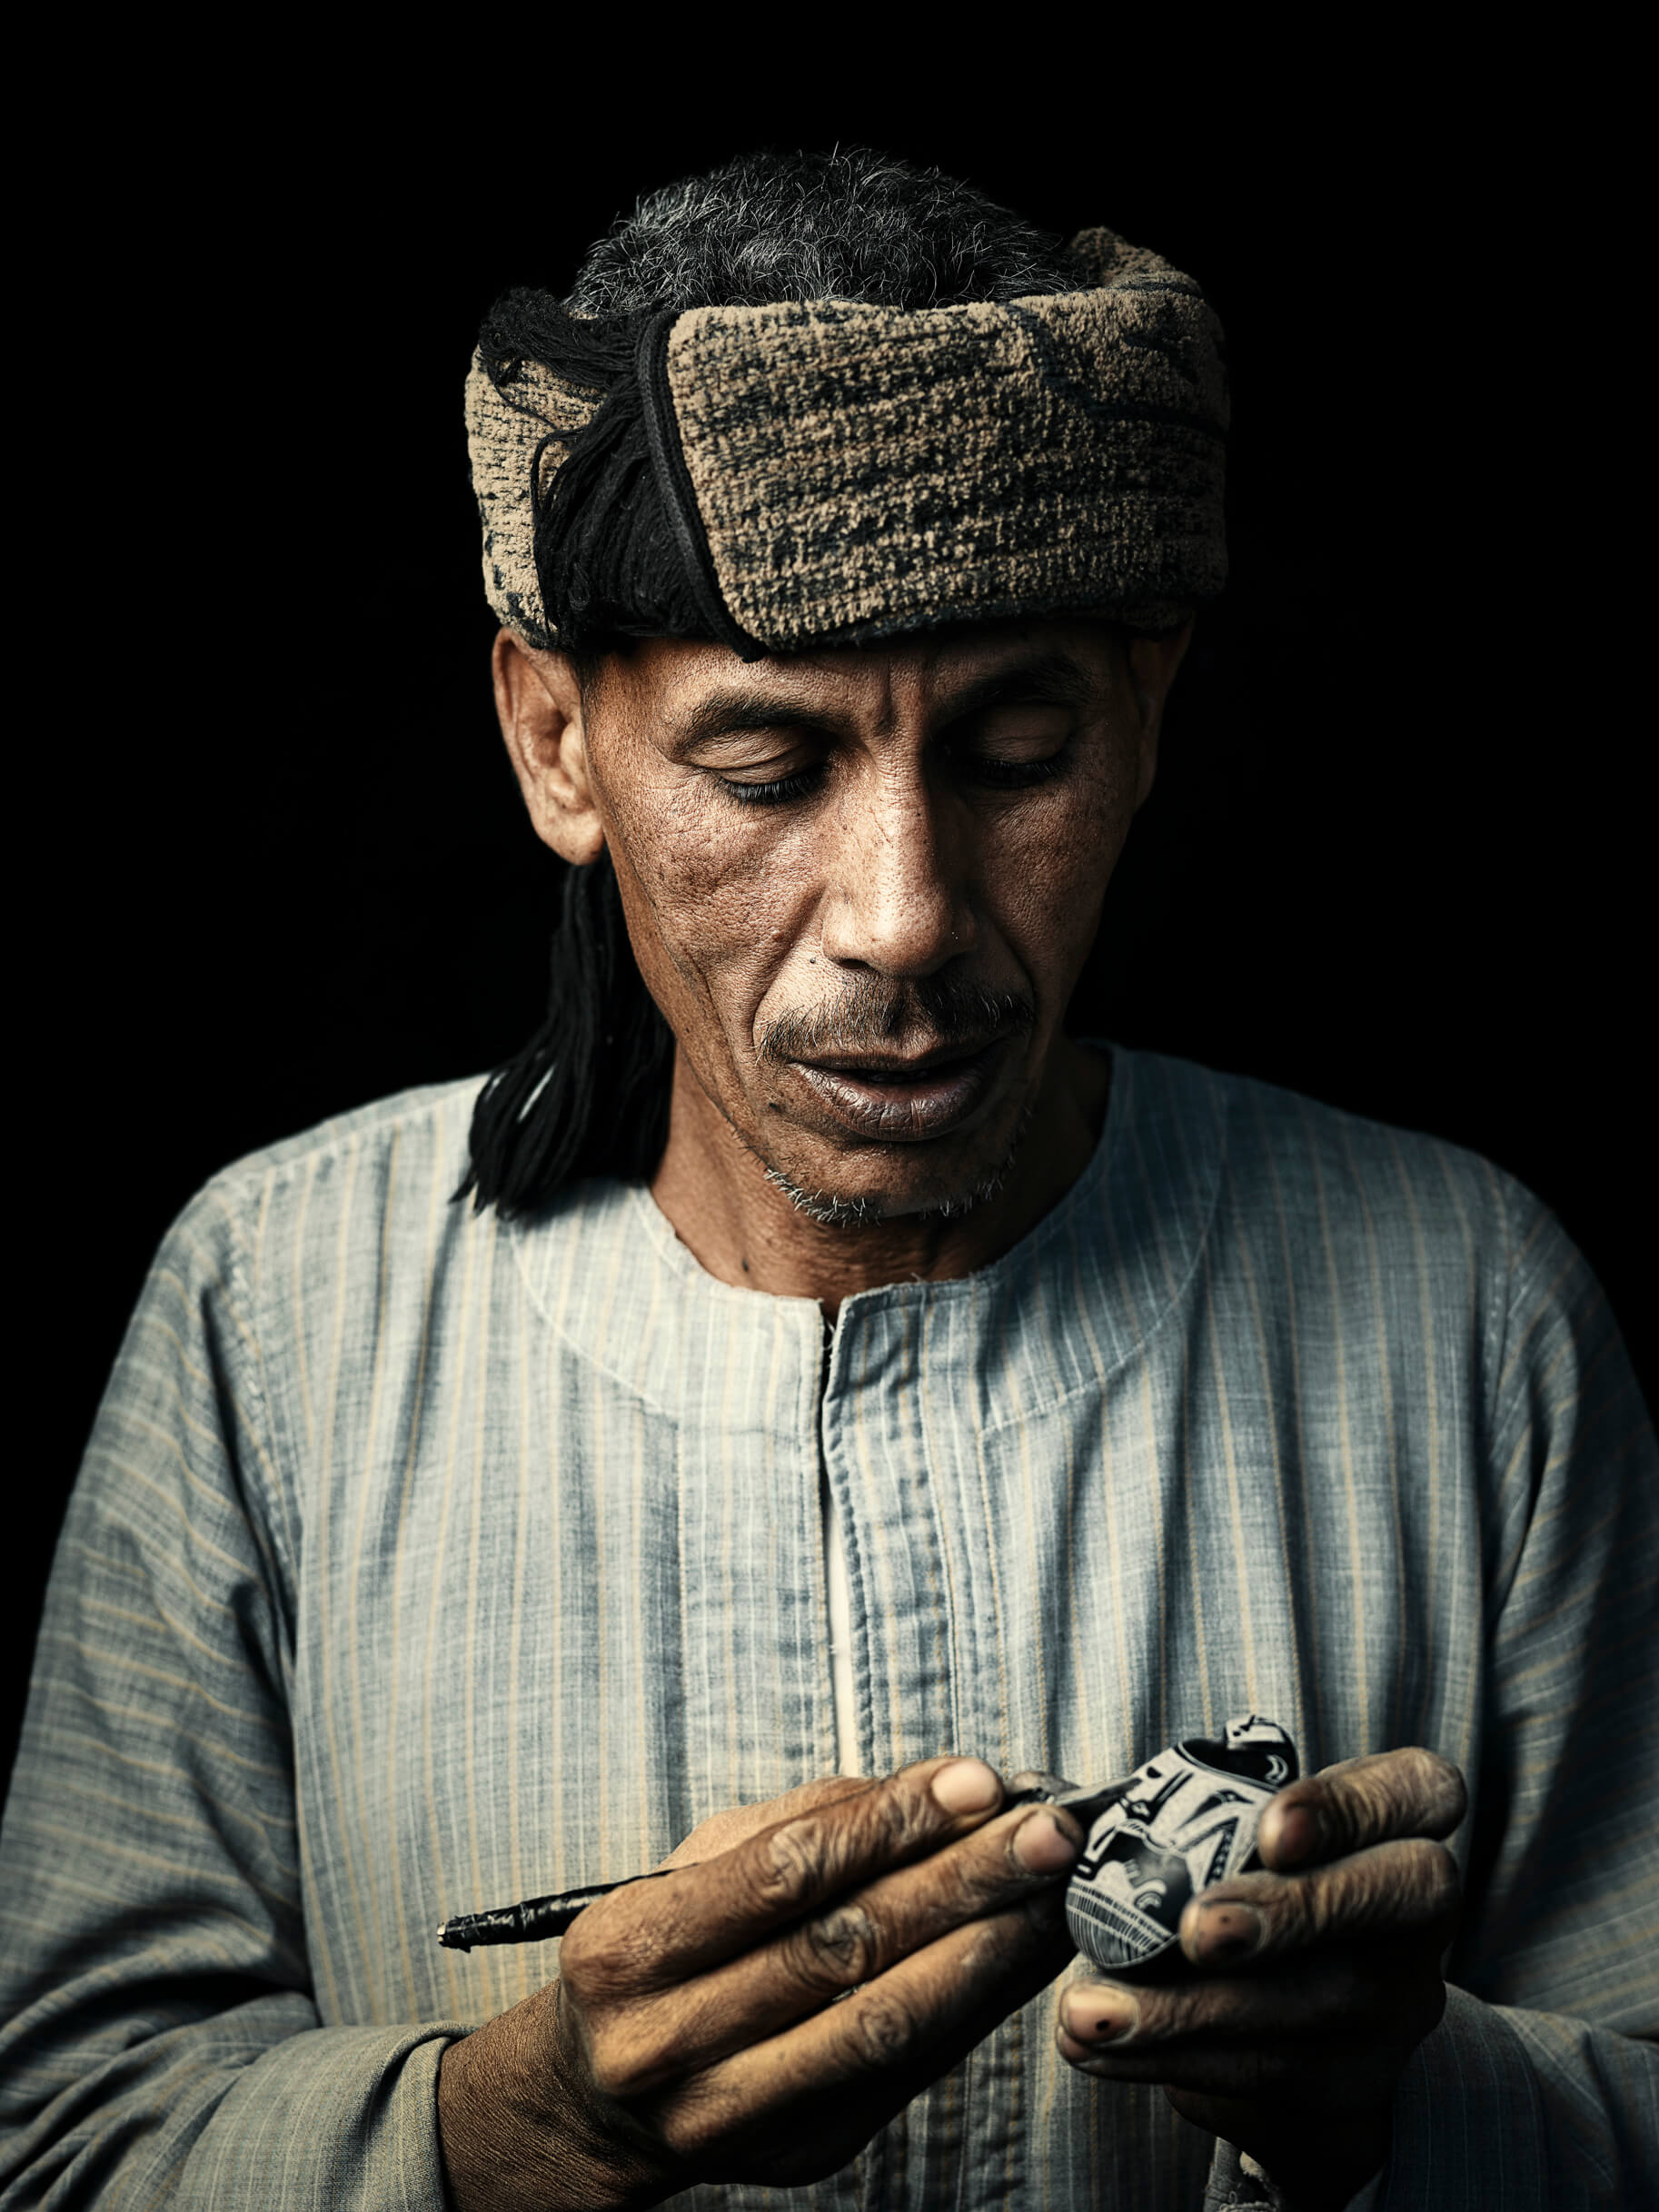 Egypt_People_Portraits_0026